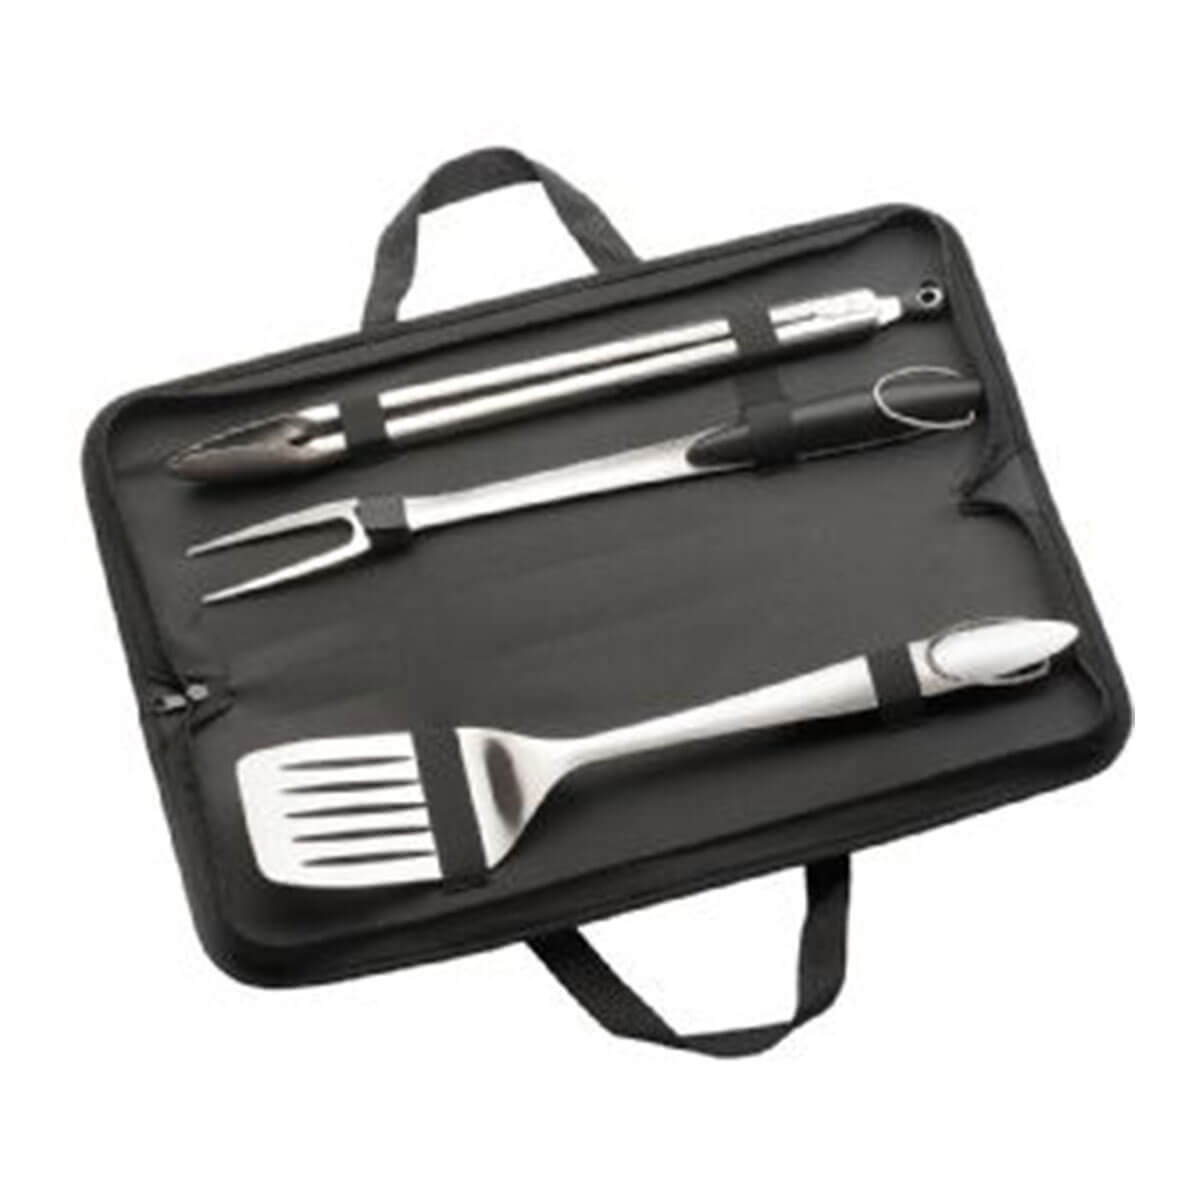 3 Piece Stainless Steel BBQ Set-Black